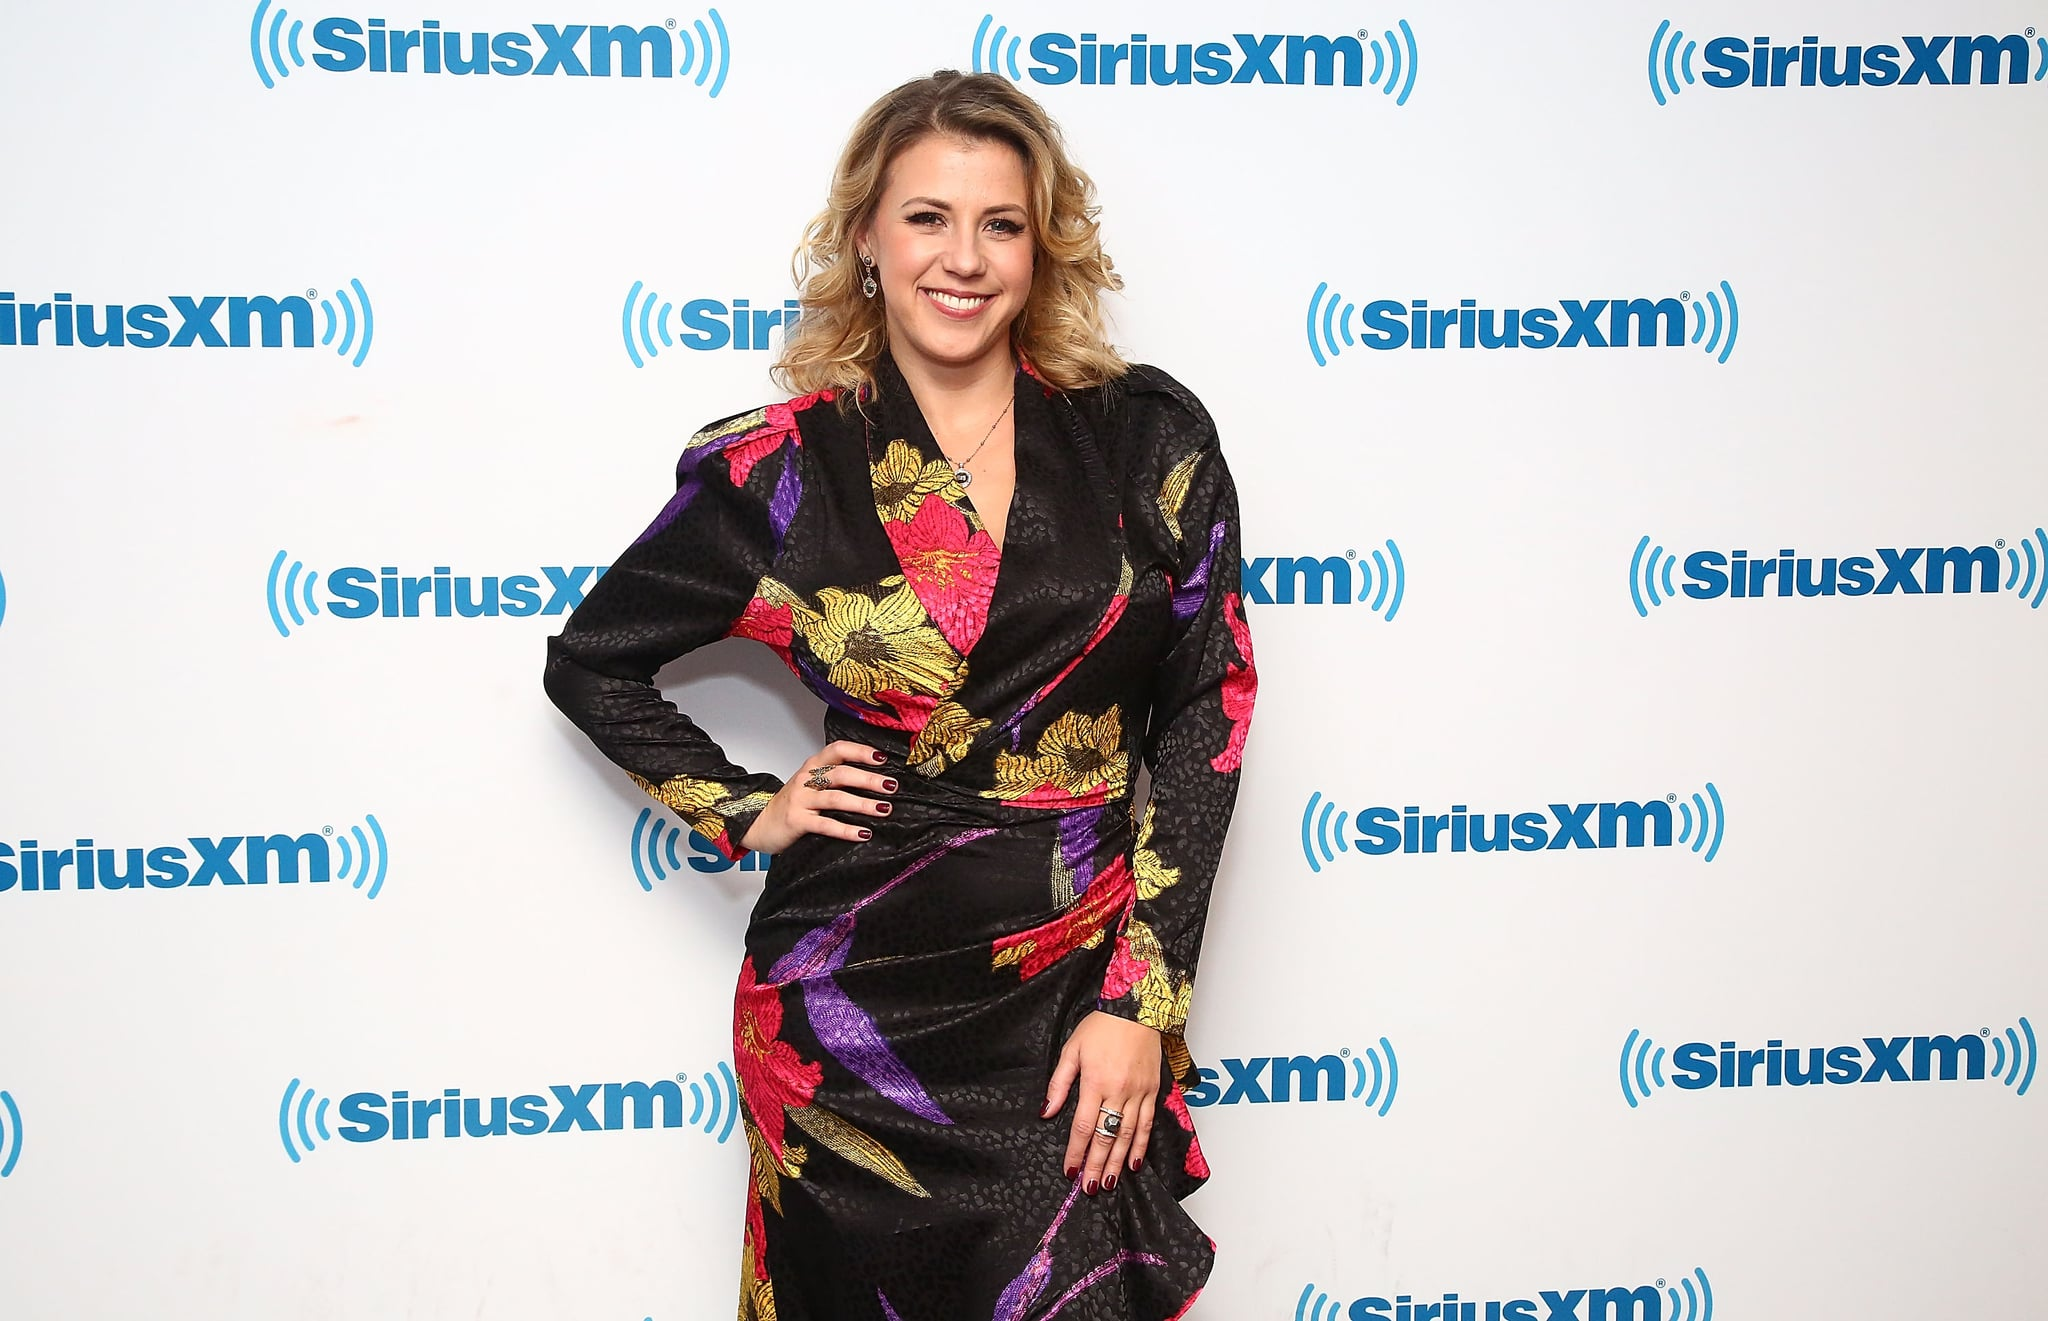 NEW YORK, NY - DECEMBER 10:  (EXCLUSIVE COVERAGE) Actress Jodie Sweetin visits the SiriusXM studios on December 10, 2018 in New York City.  (Photo by Astrid Stawiarz/Getty Images)